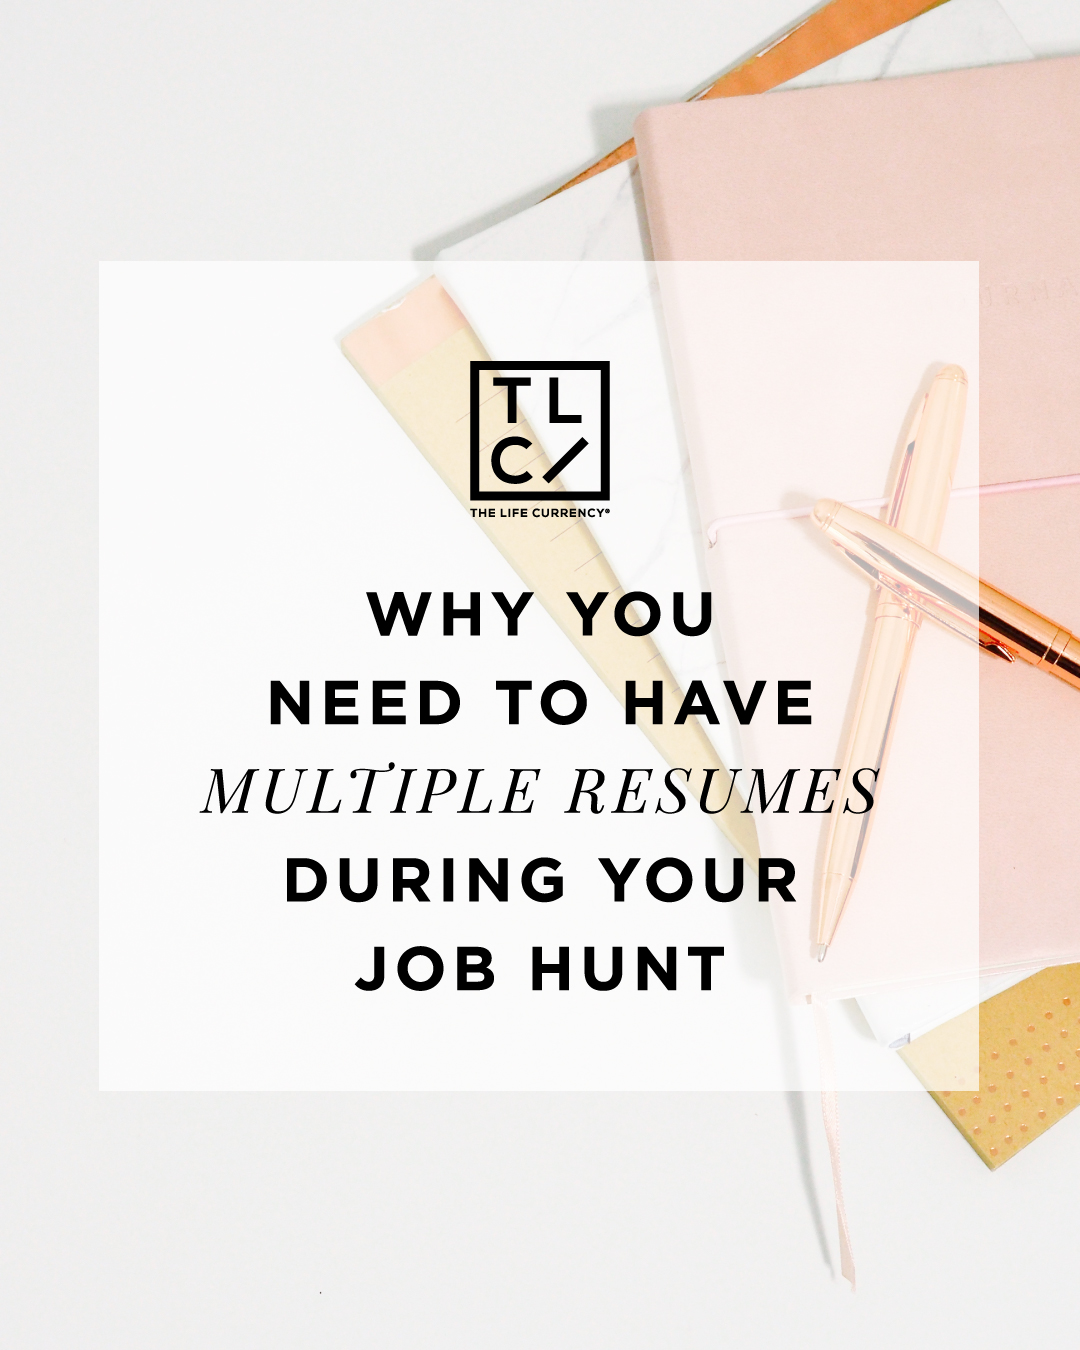 Why it's a Clever Idea to Have Multiple Resumes